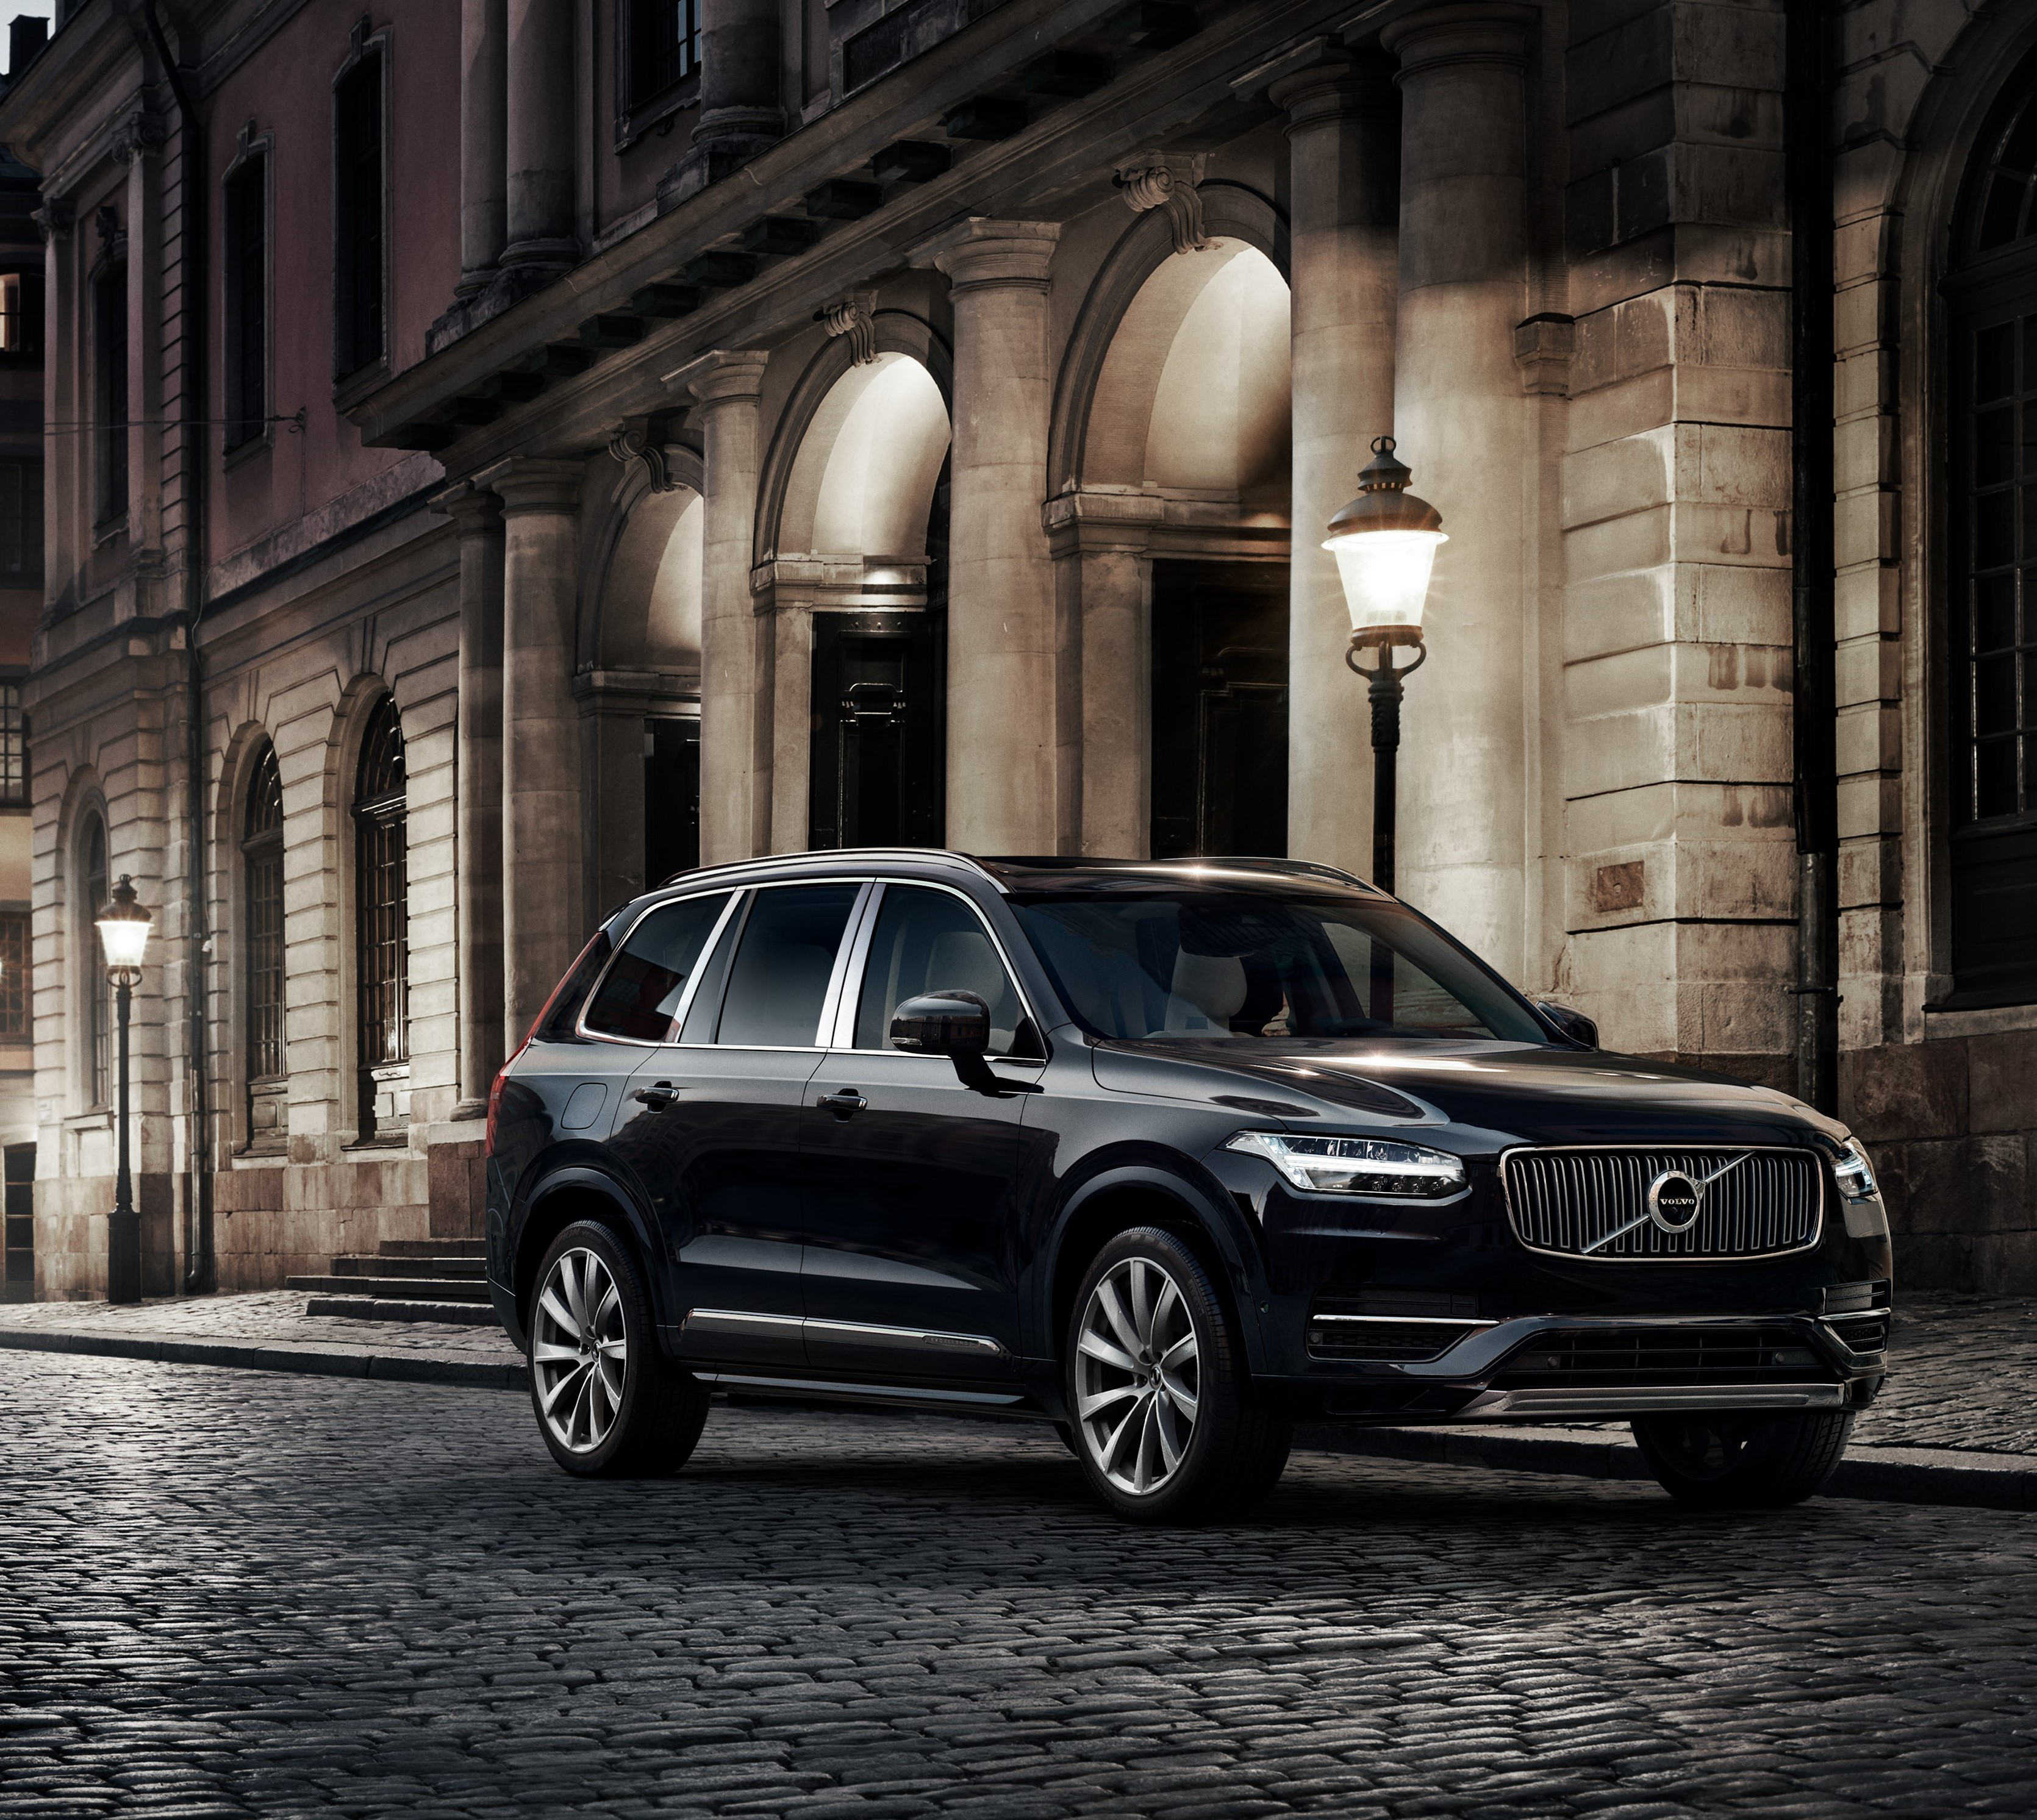 New Volvo XC90 For Sale At Volvo Cars Worcester